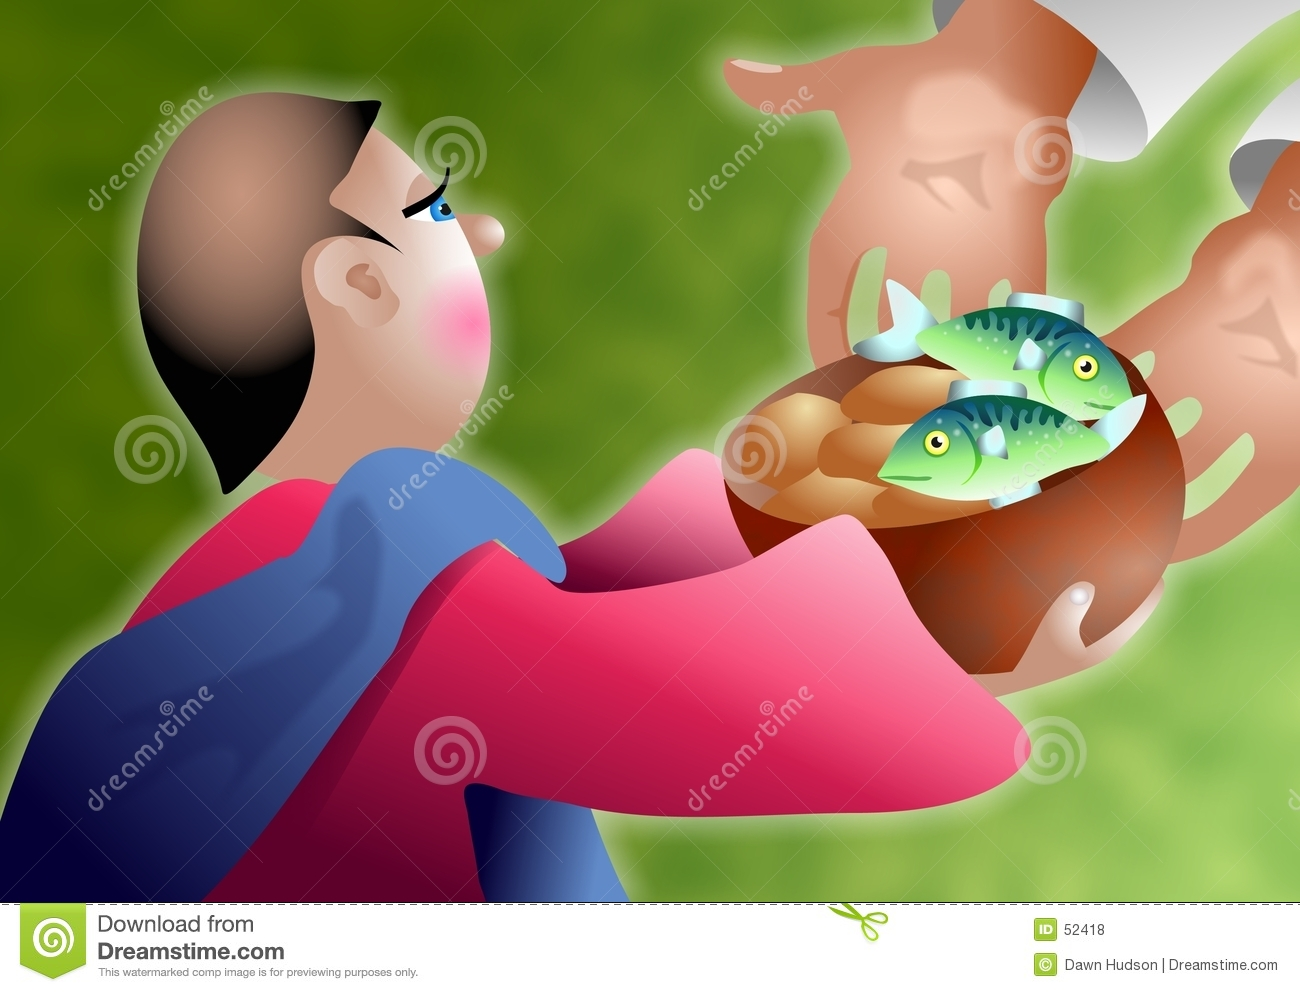 Loaves cartoons illustrations vector stock images 139 for Loaves and fishes